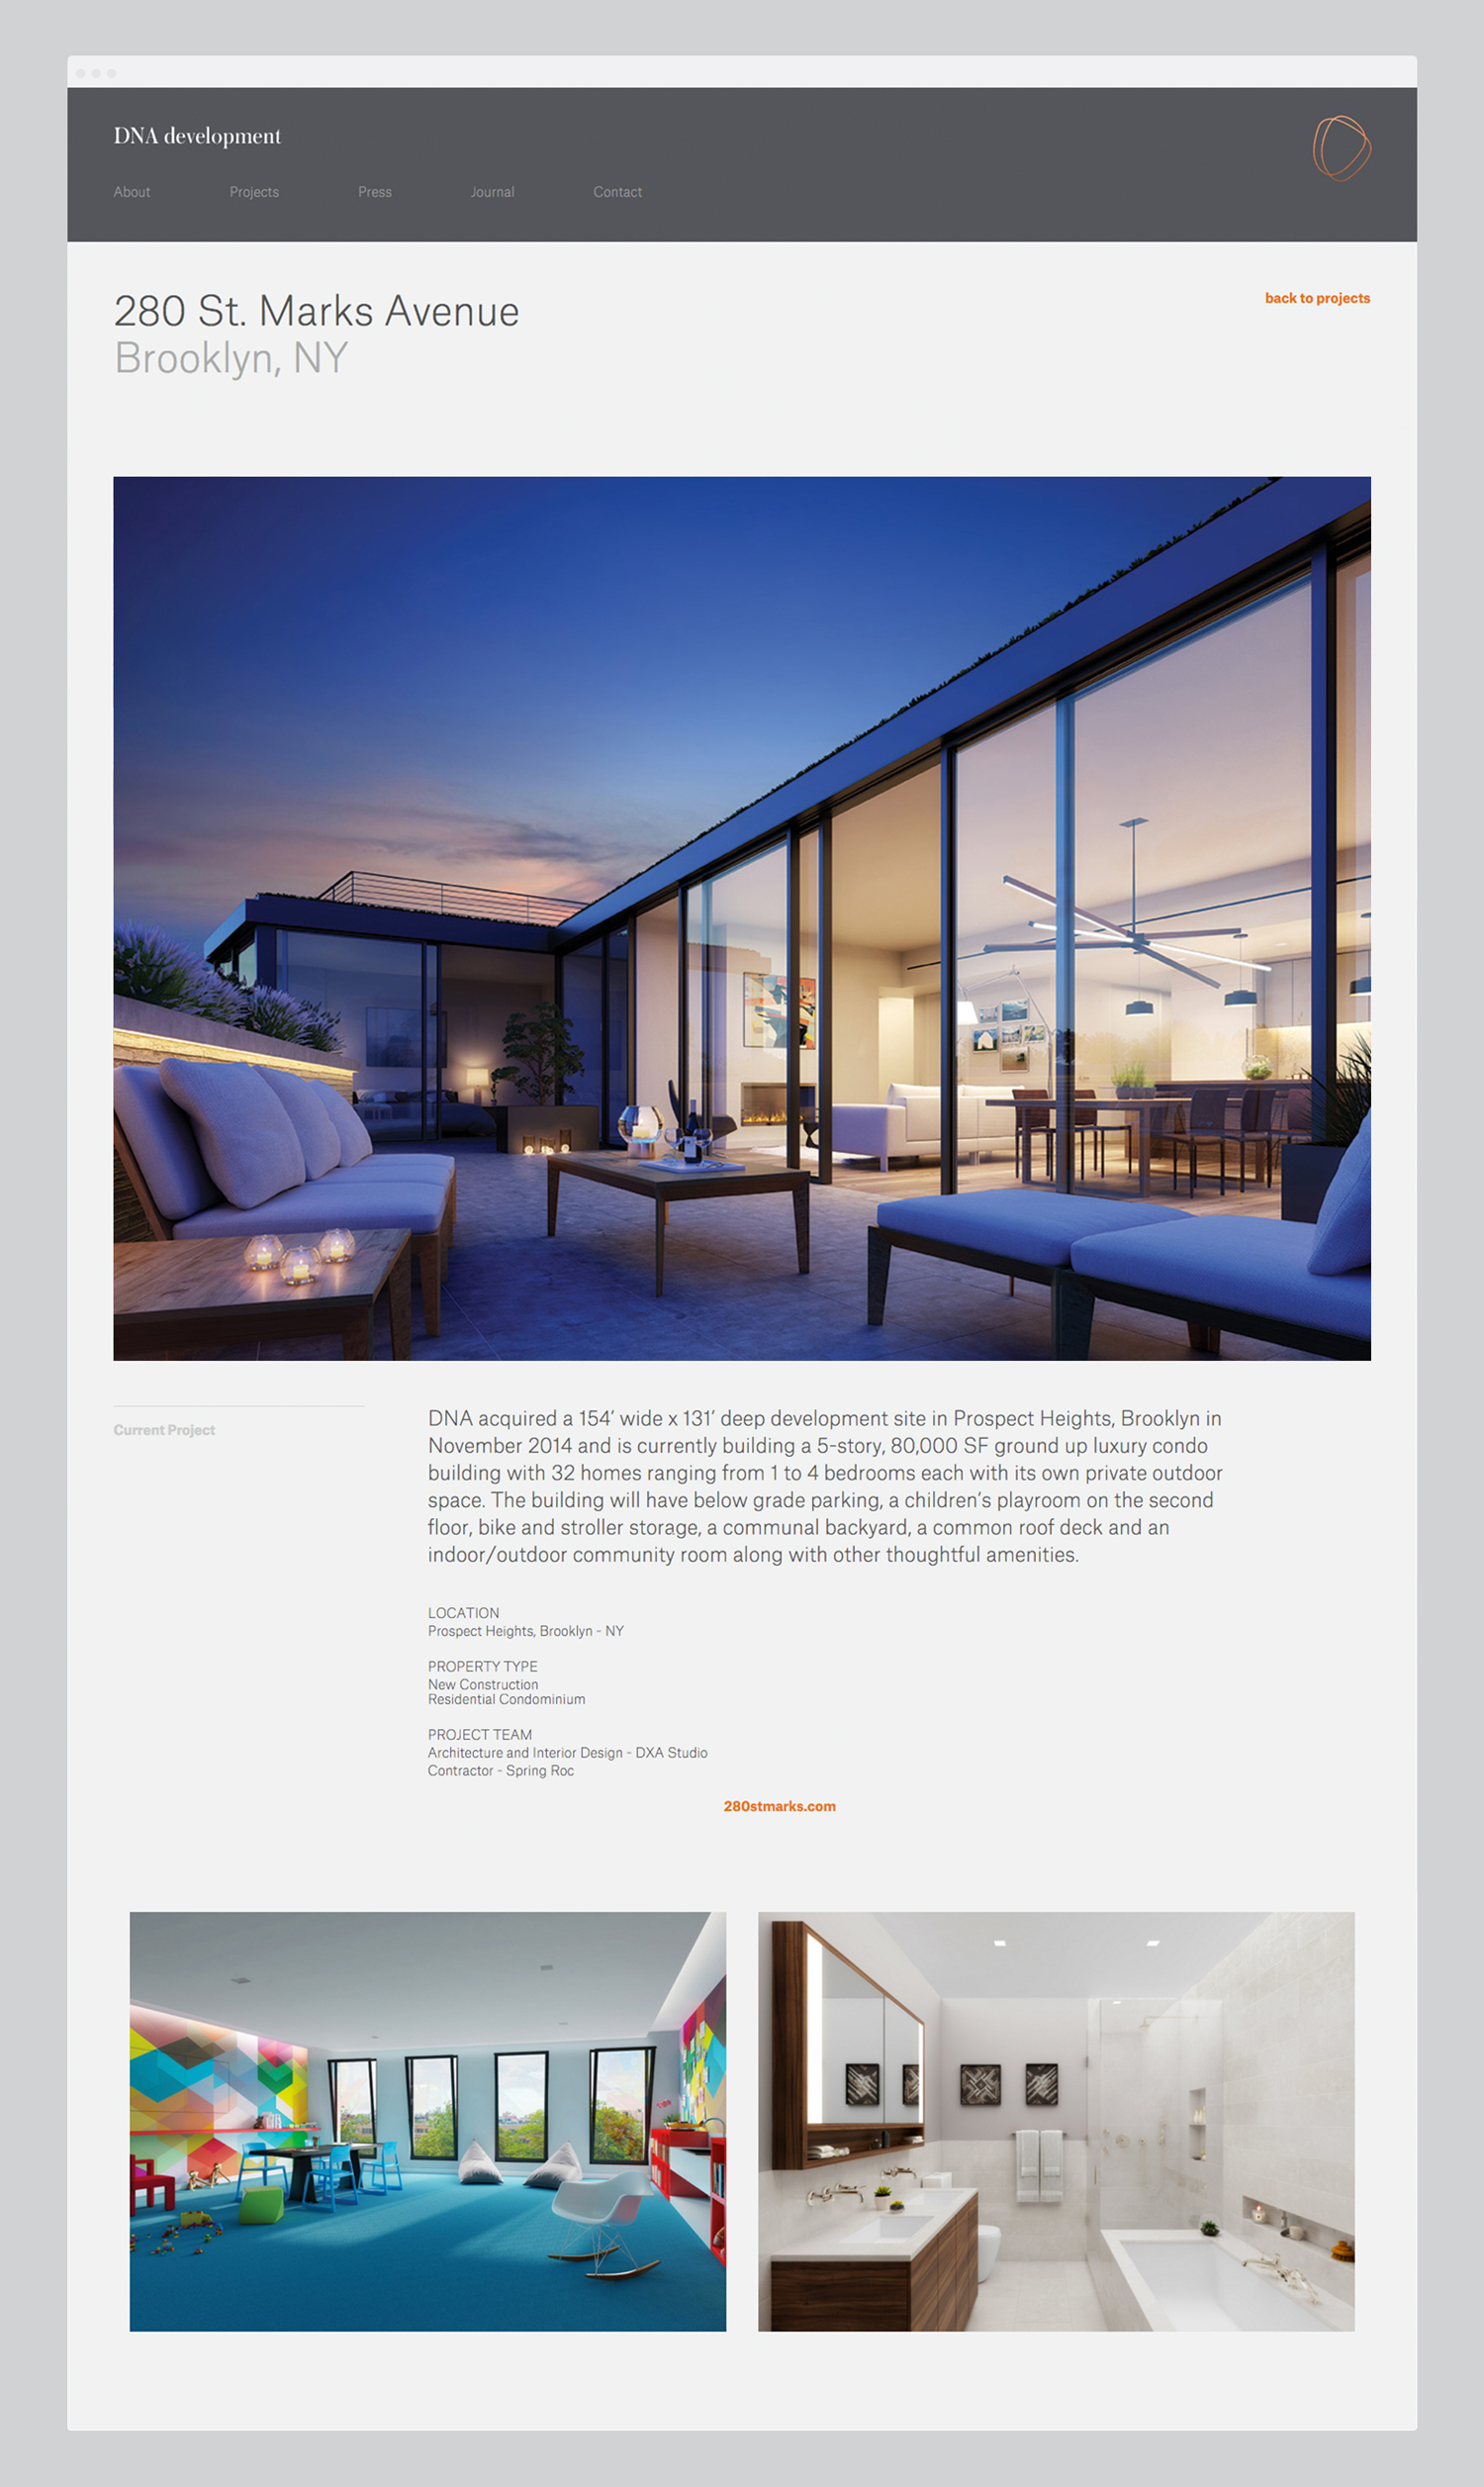 Brand identity and website for real estate investment and development business DNA development by Face